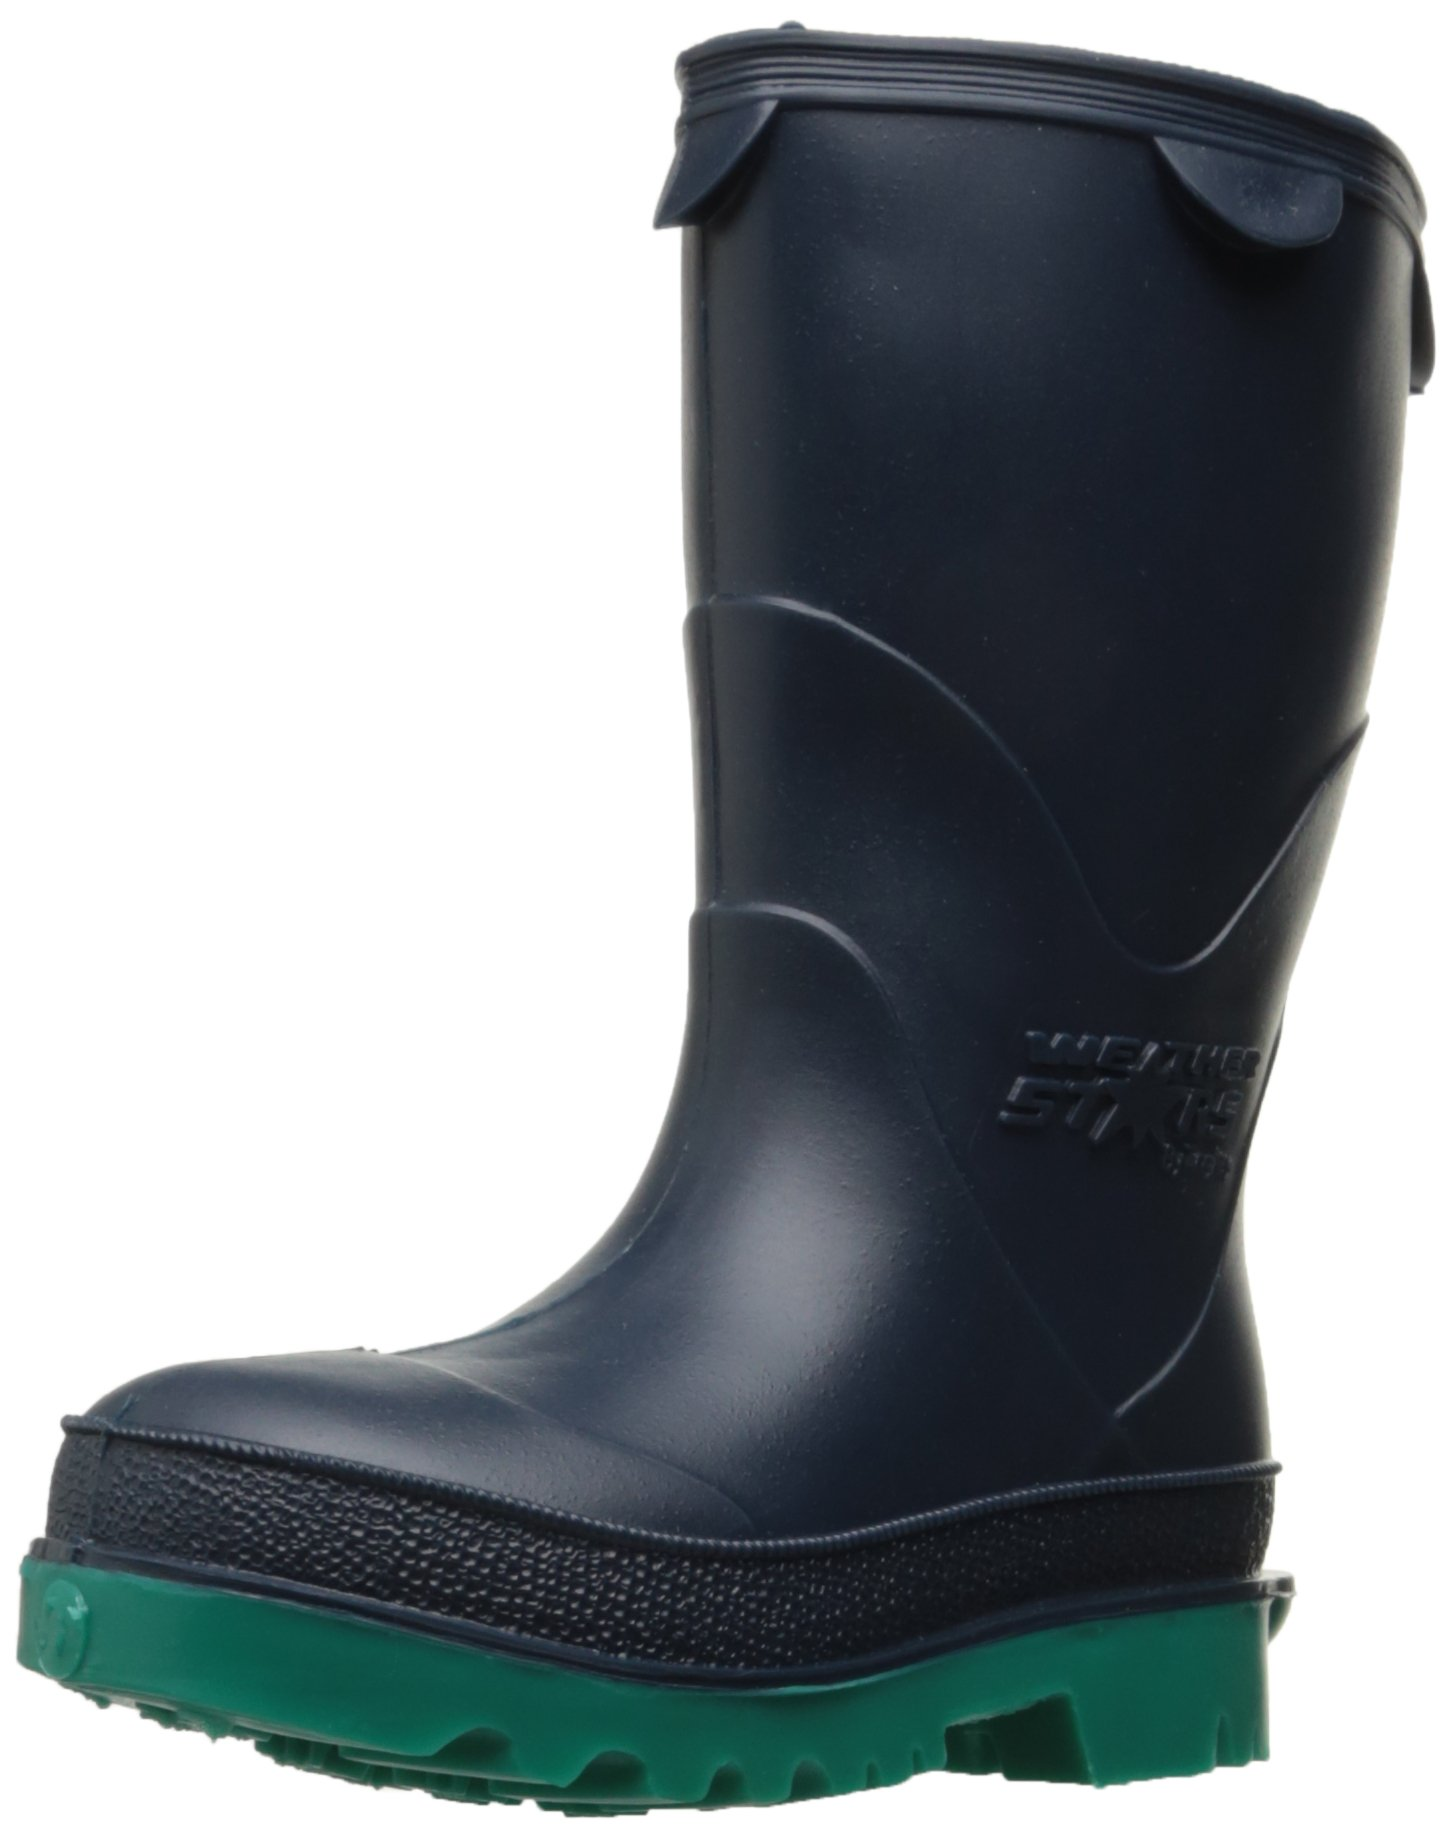 STORMTRACKS 11668.07 Child's Boot, Size 07, Blue/Green